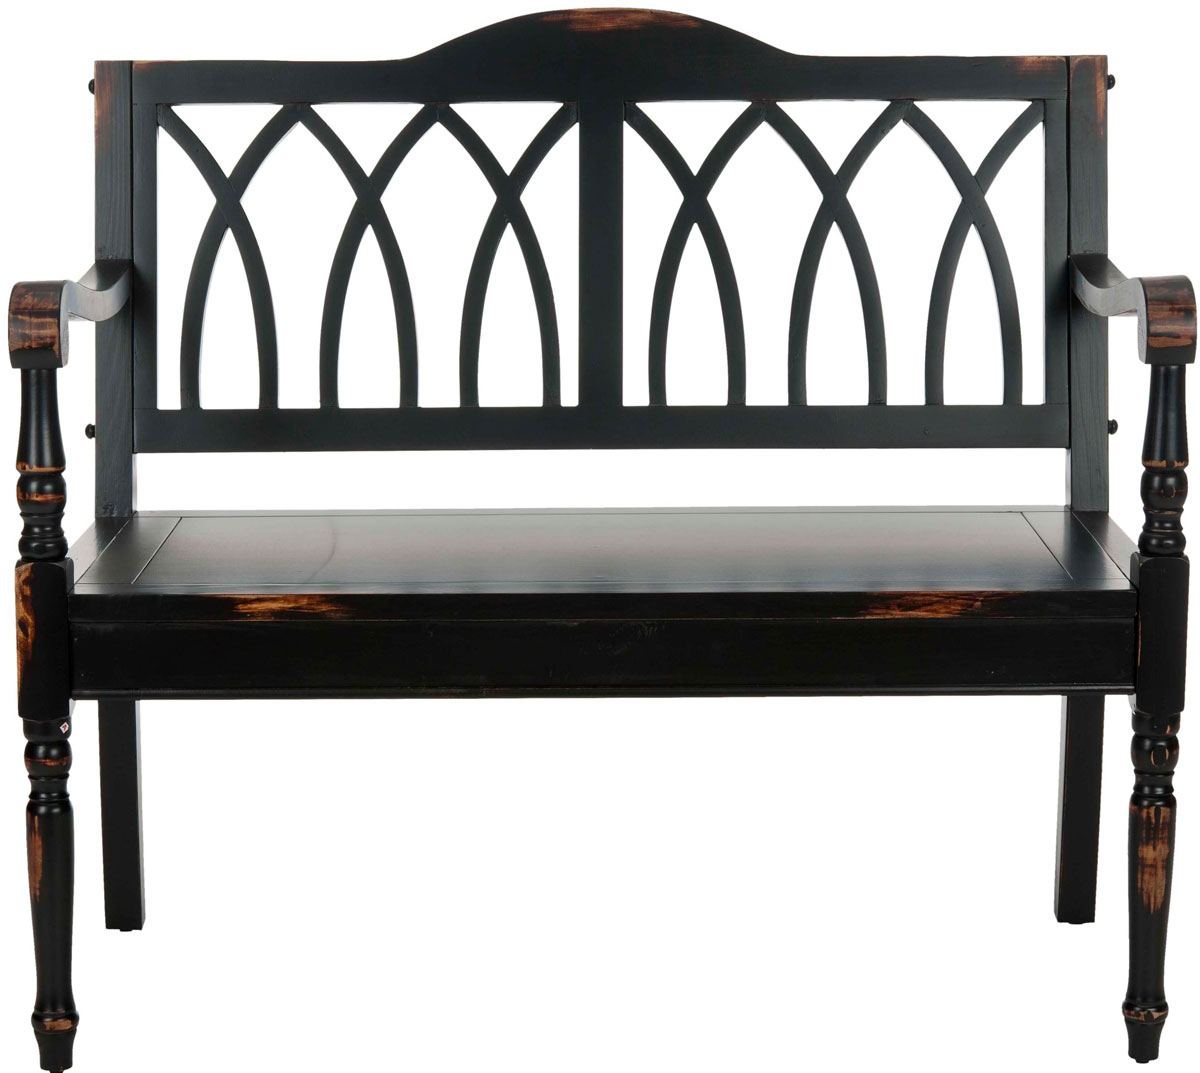 Elegant Finials On The Sides Under Arms And A Back Motif Inspired By Gothic Architecture Transform Distressed Black Benjamin Bench Into Striking